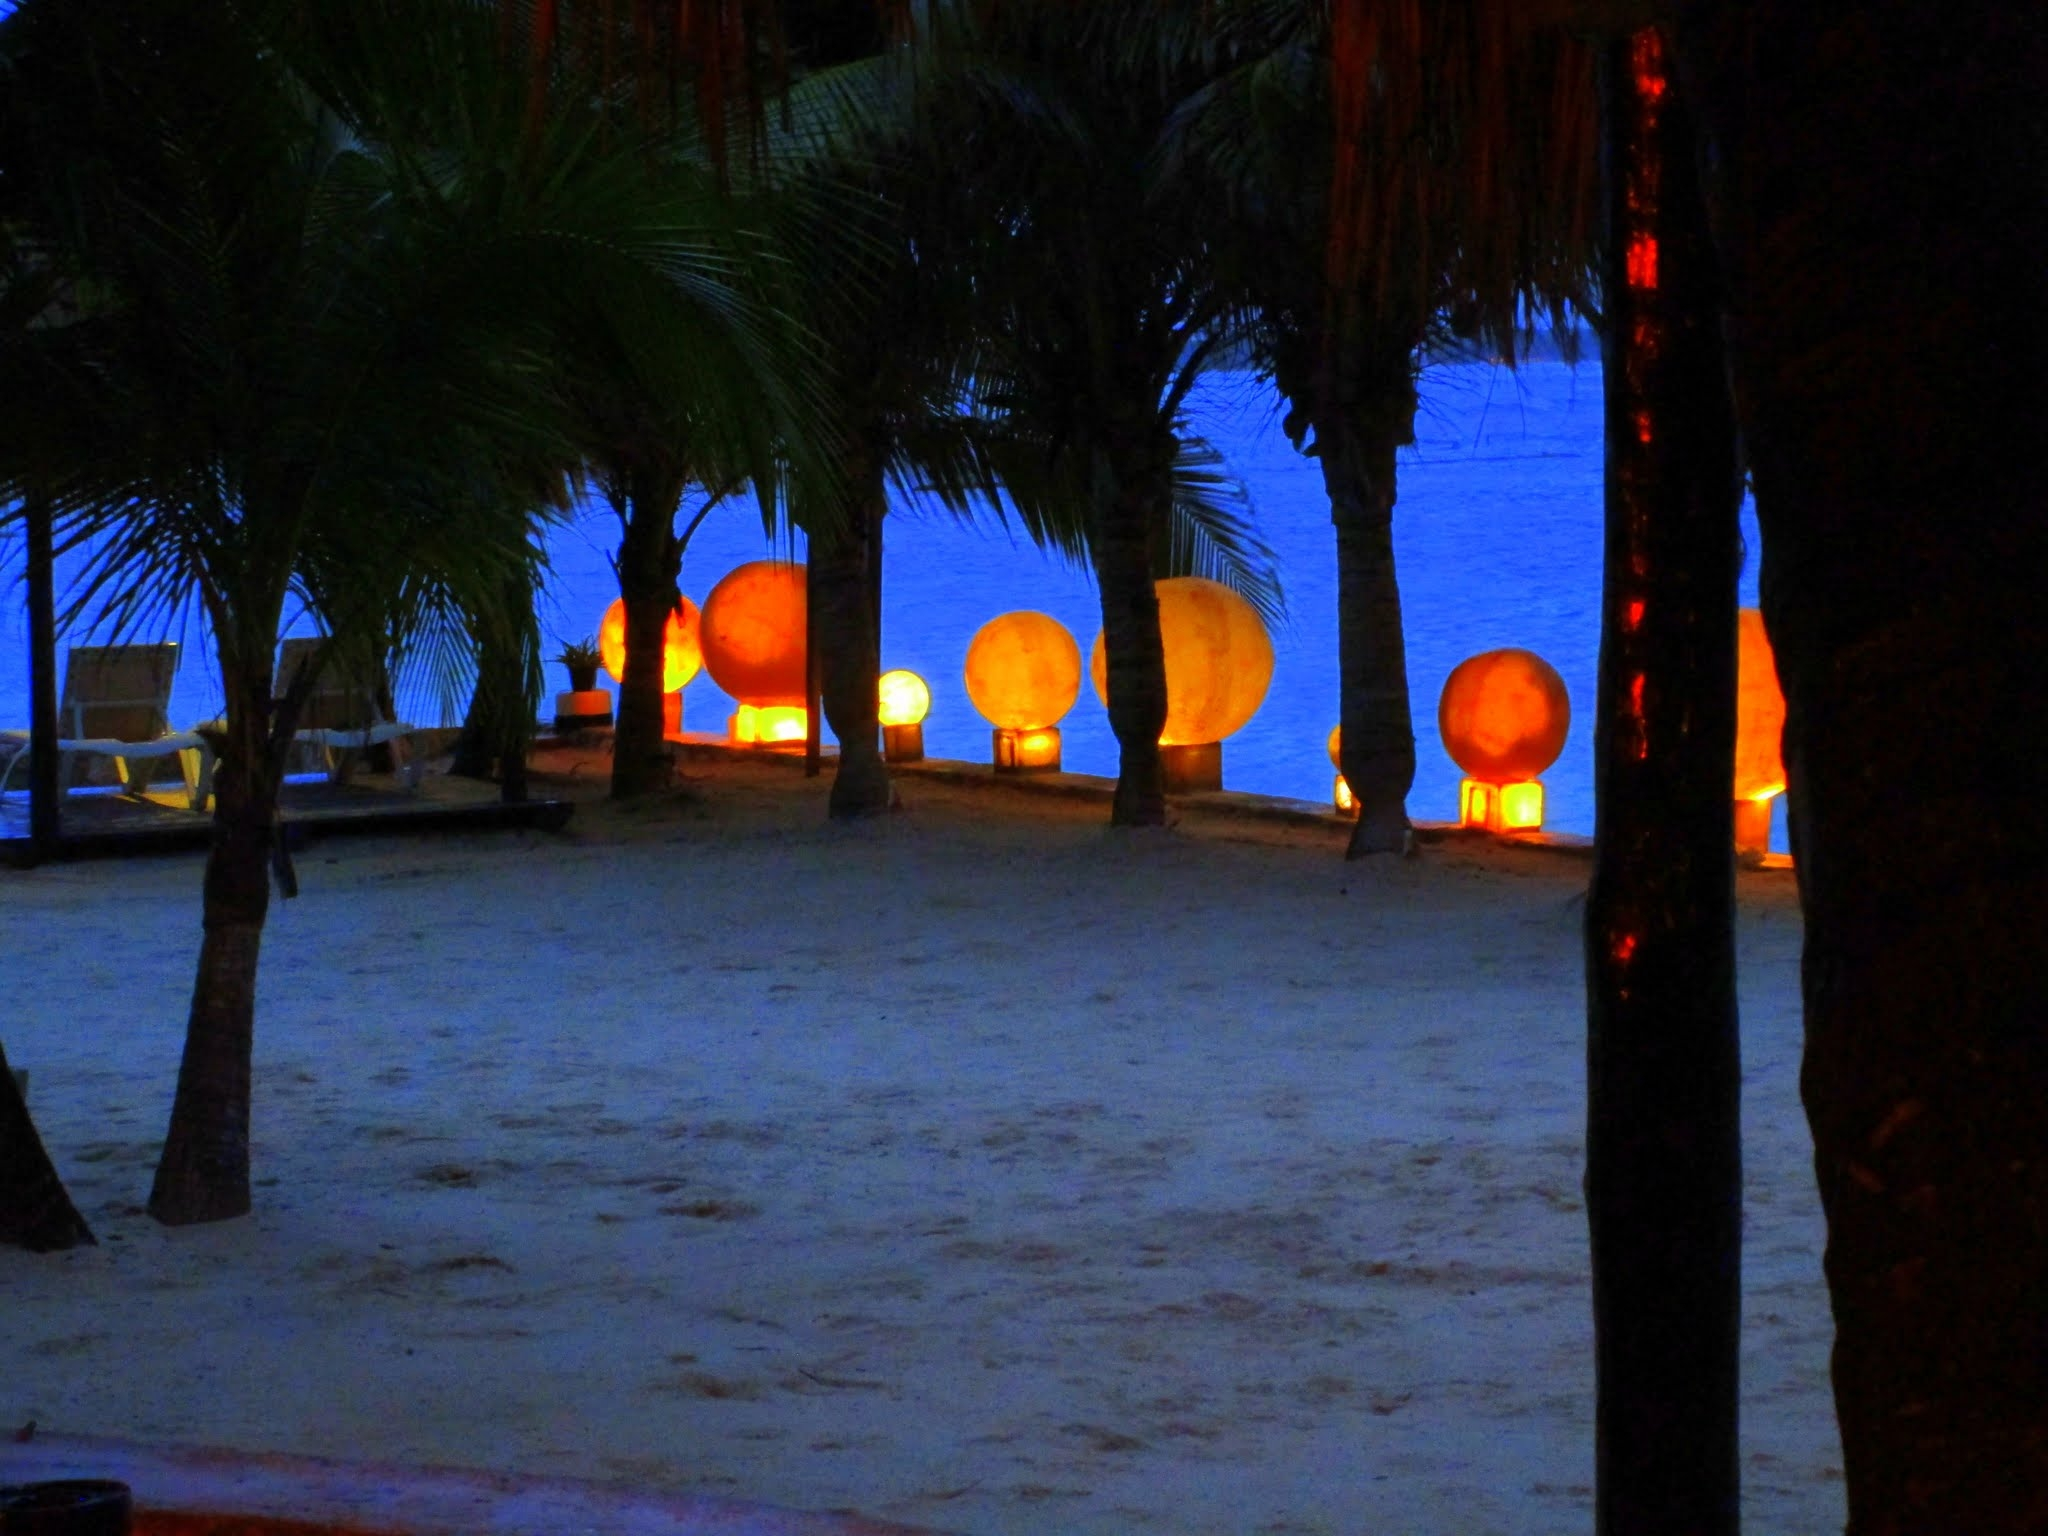 Automatic lights gently come to life as the sun sets over the horizon at the El Dorado Seaside Suites Resort